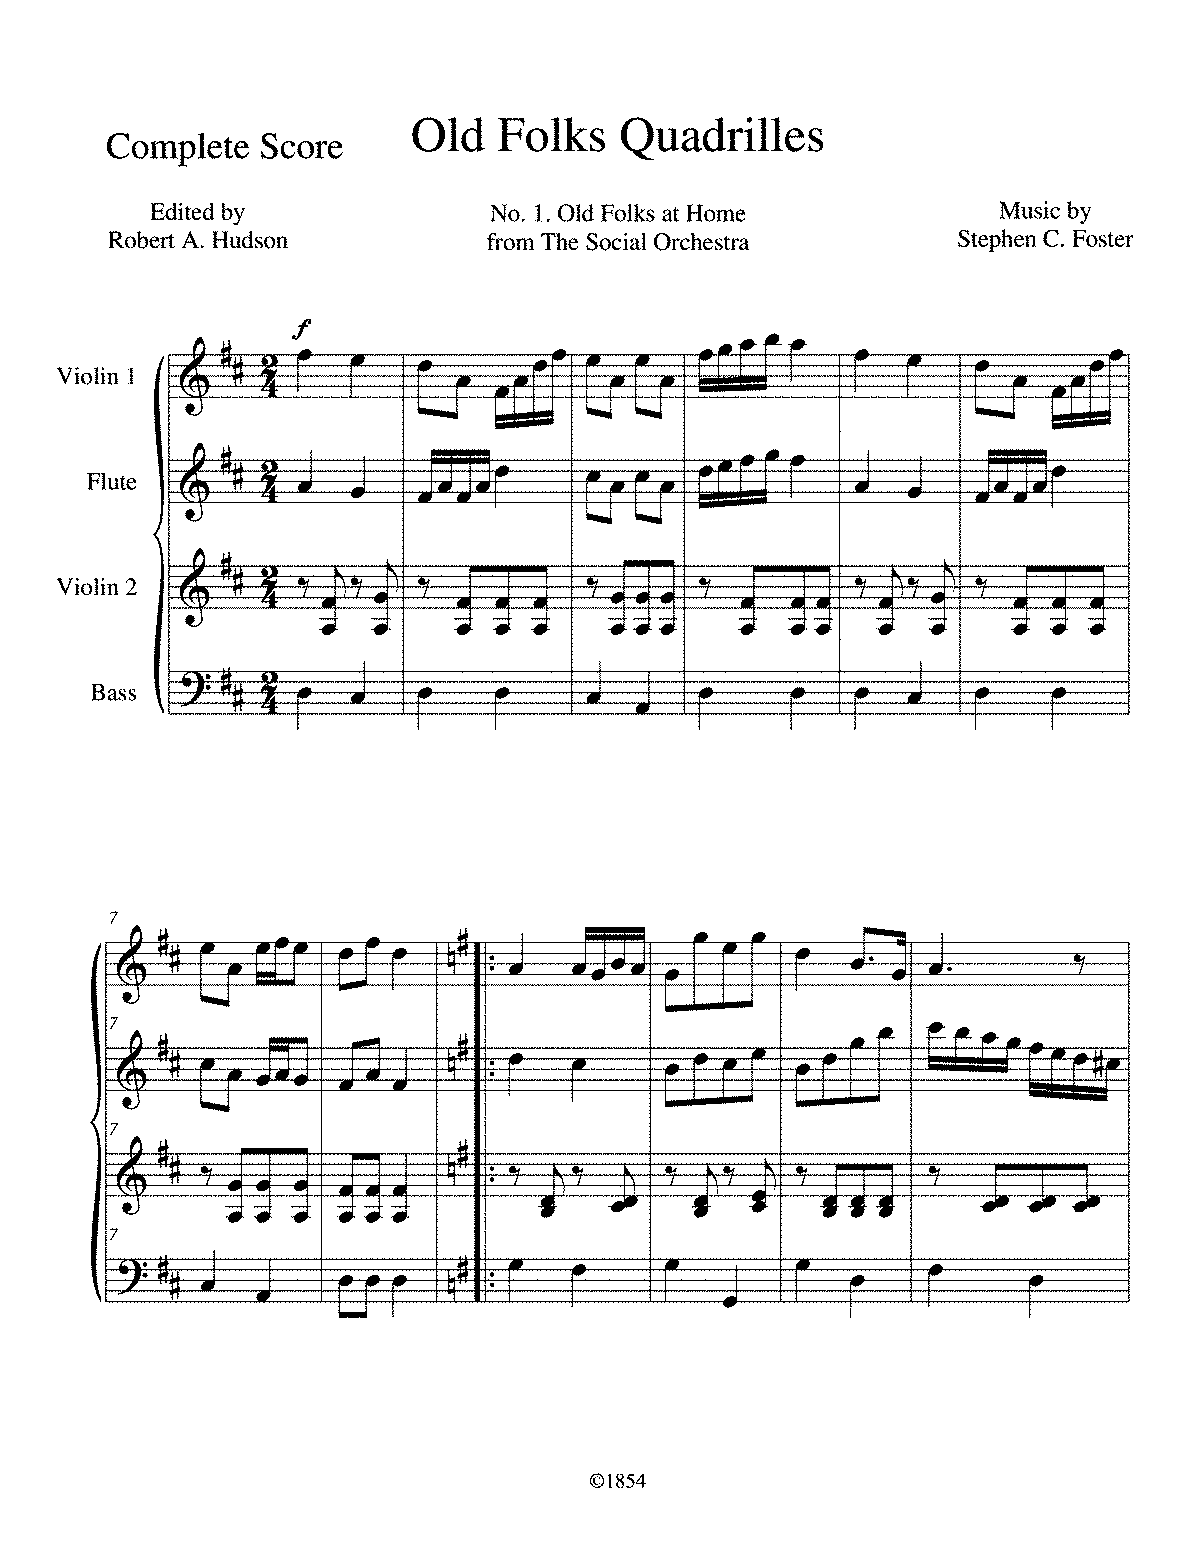 PMLP396869-Old Folks Quadrilles 1 Old Folks at Home - Complete Score.pdf